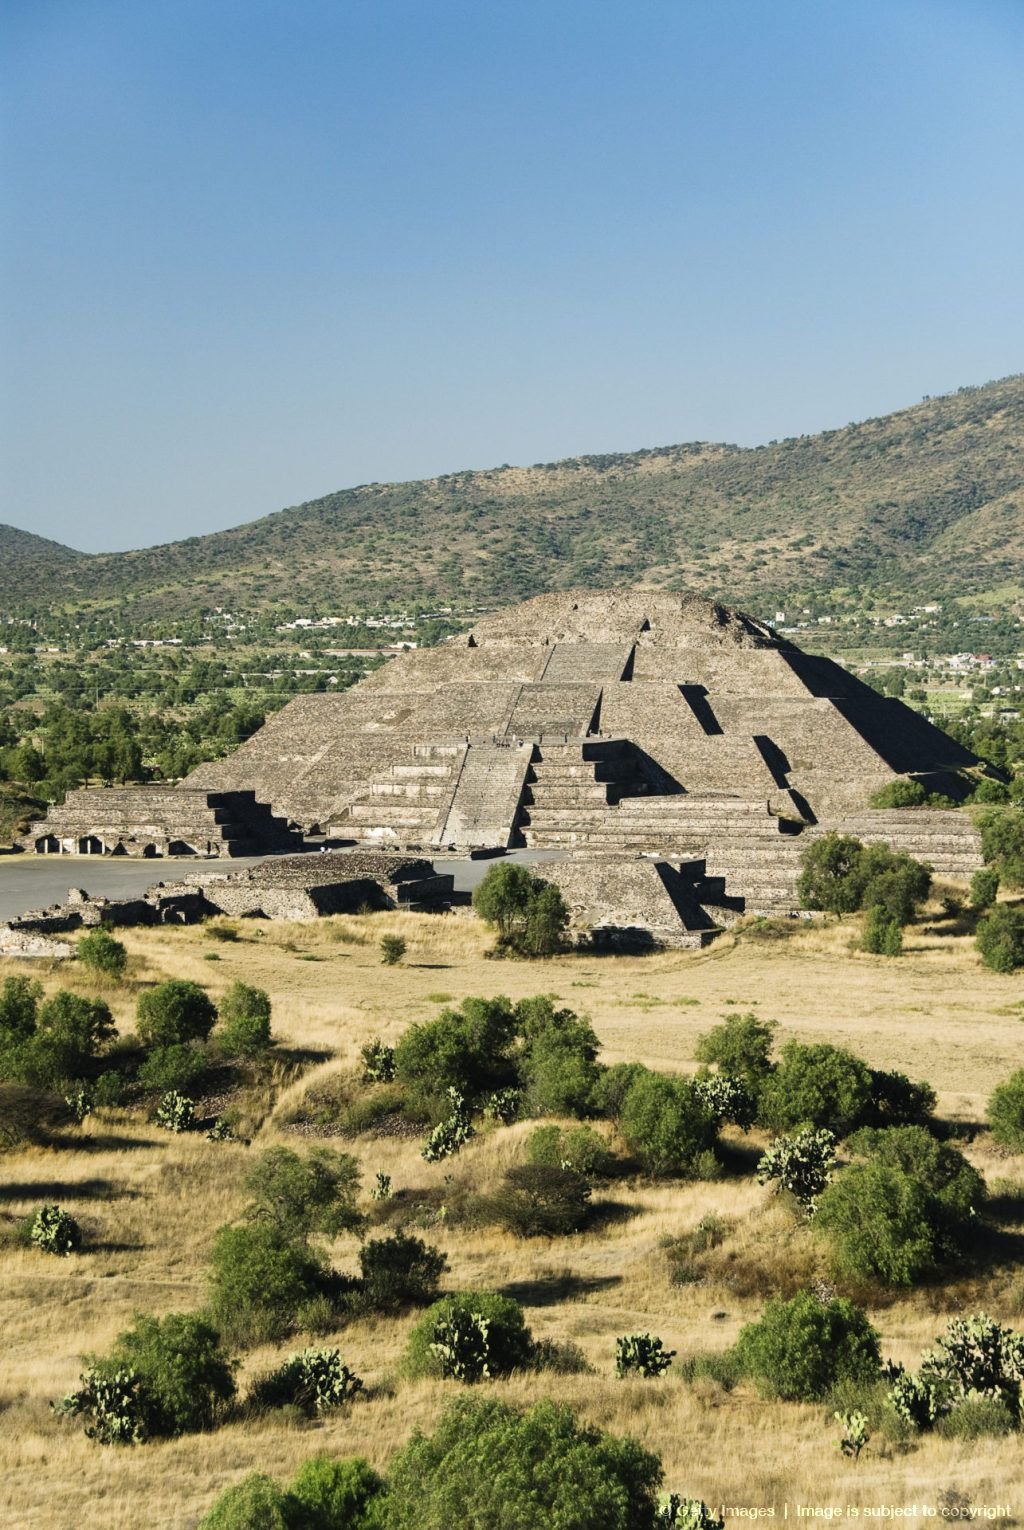 State of Mexico, Archaeological Zone of Teotihuacan, Pyramid of the Moon.